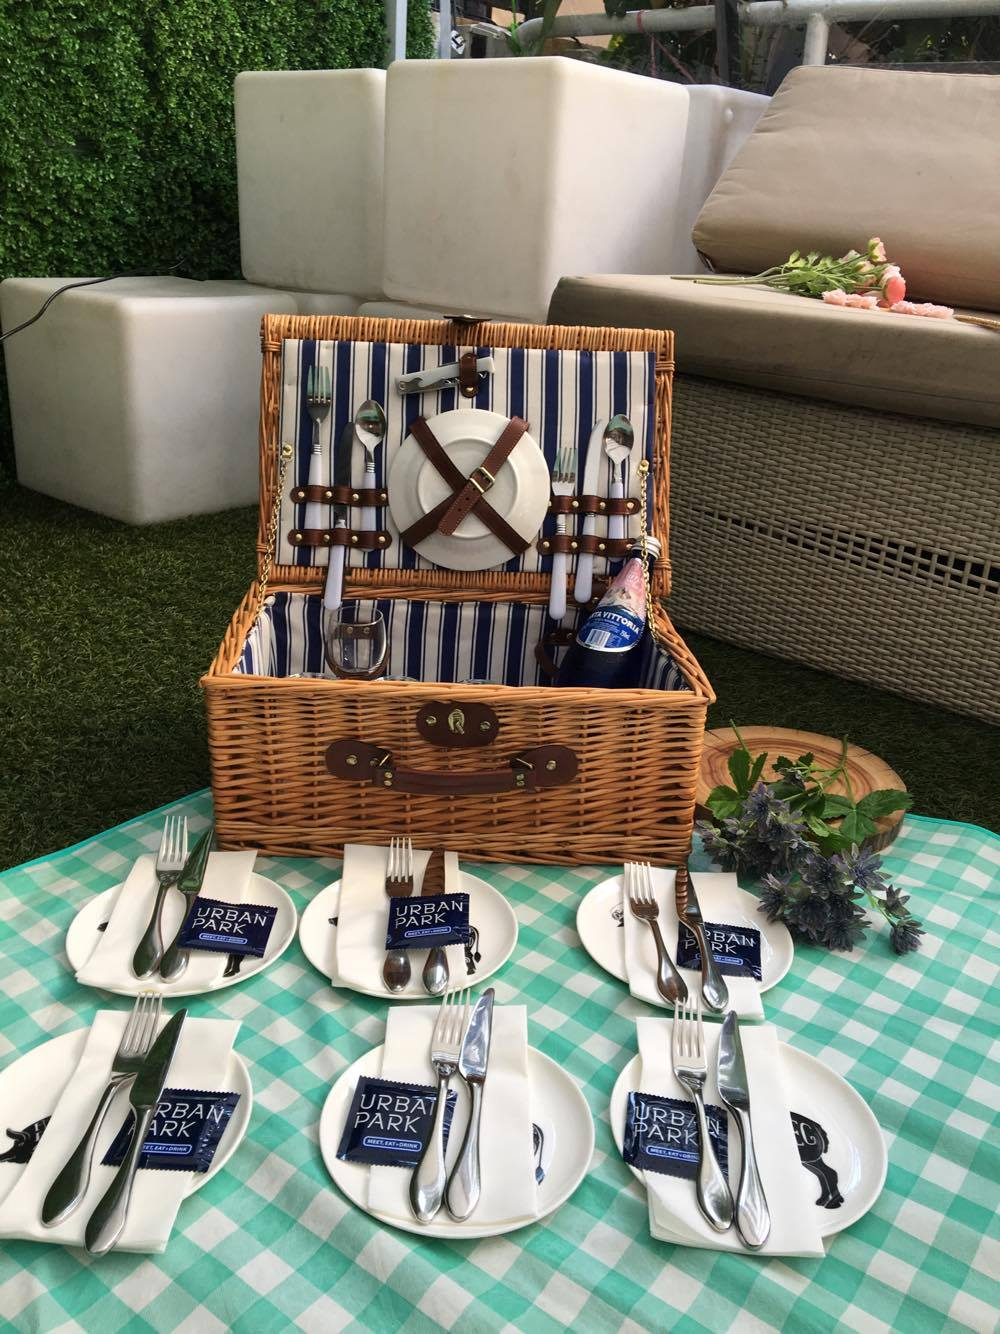 Such a lovely picnic basket!